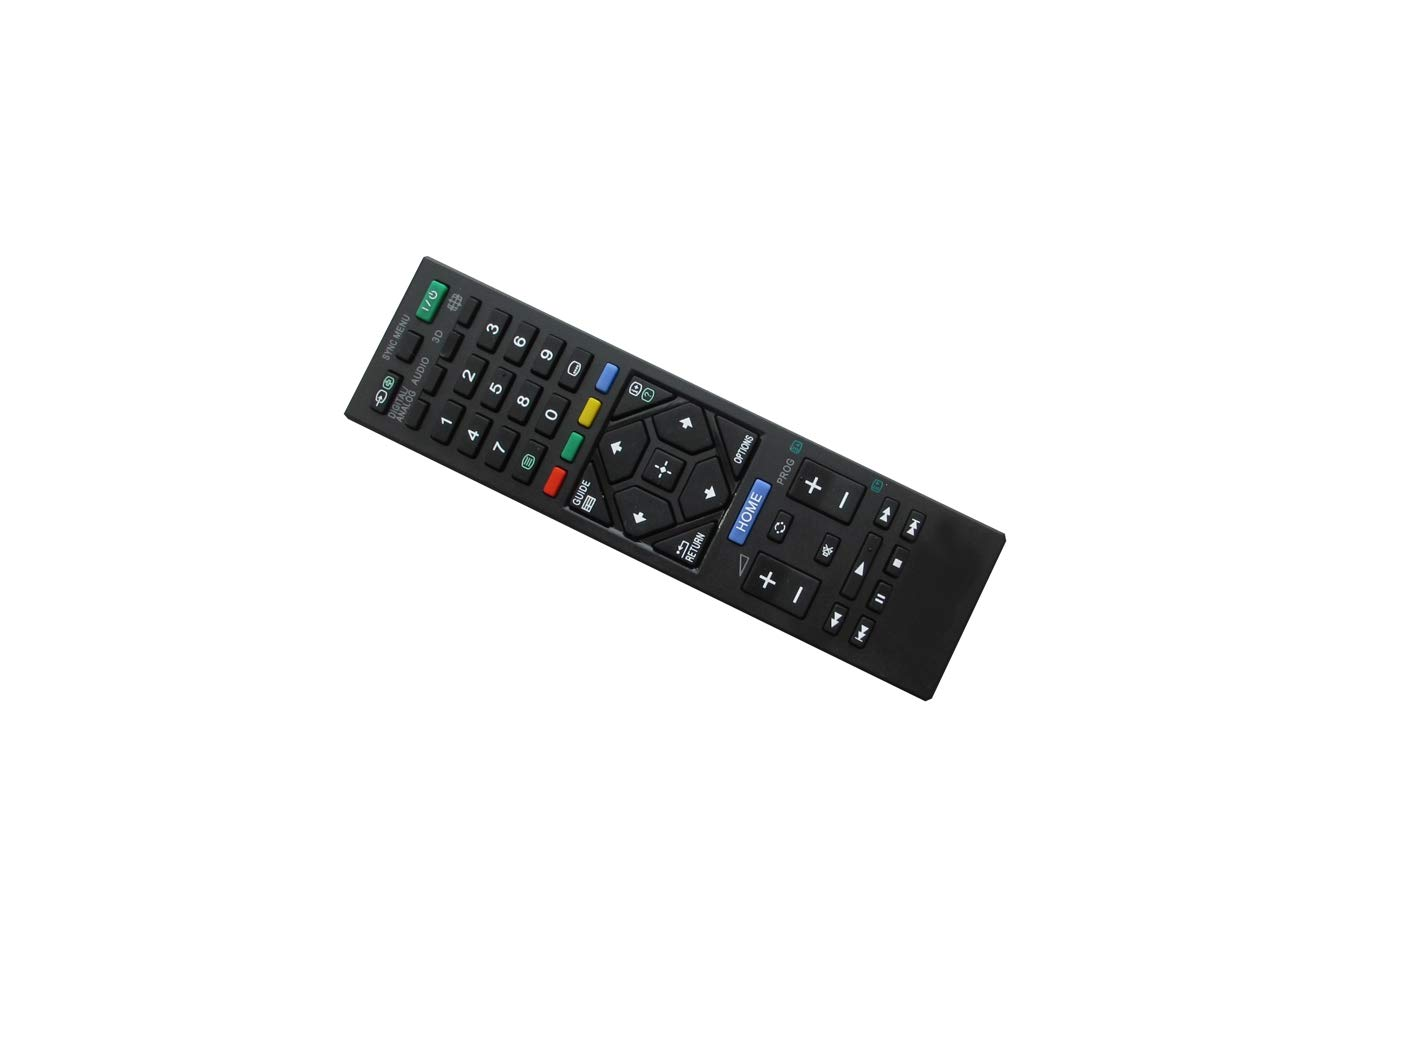 General Replacement Remote Control For Sony Plasma KDL-32R400A KDL-32R420B KDL-47R507A KDL-46R450A BRAVIA LCD LED HDTV TV